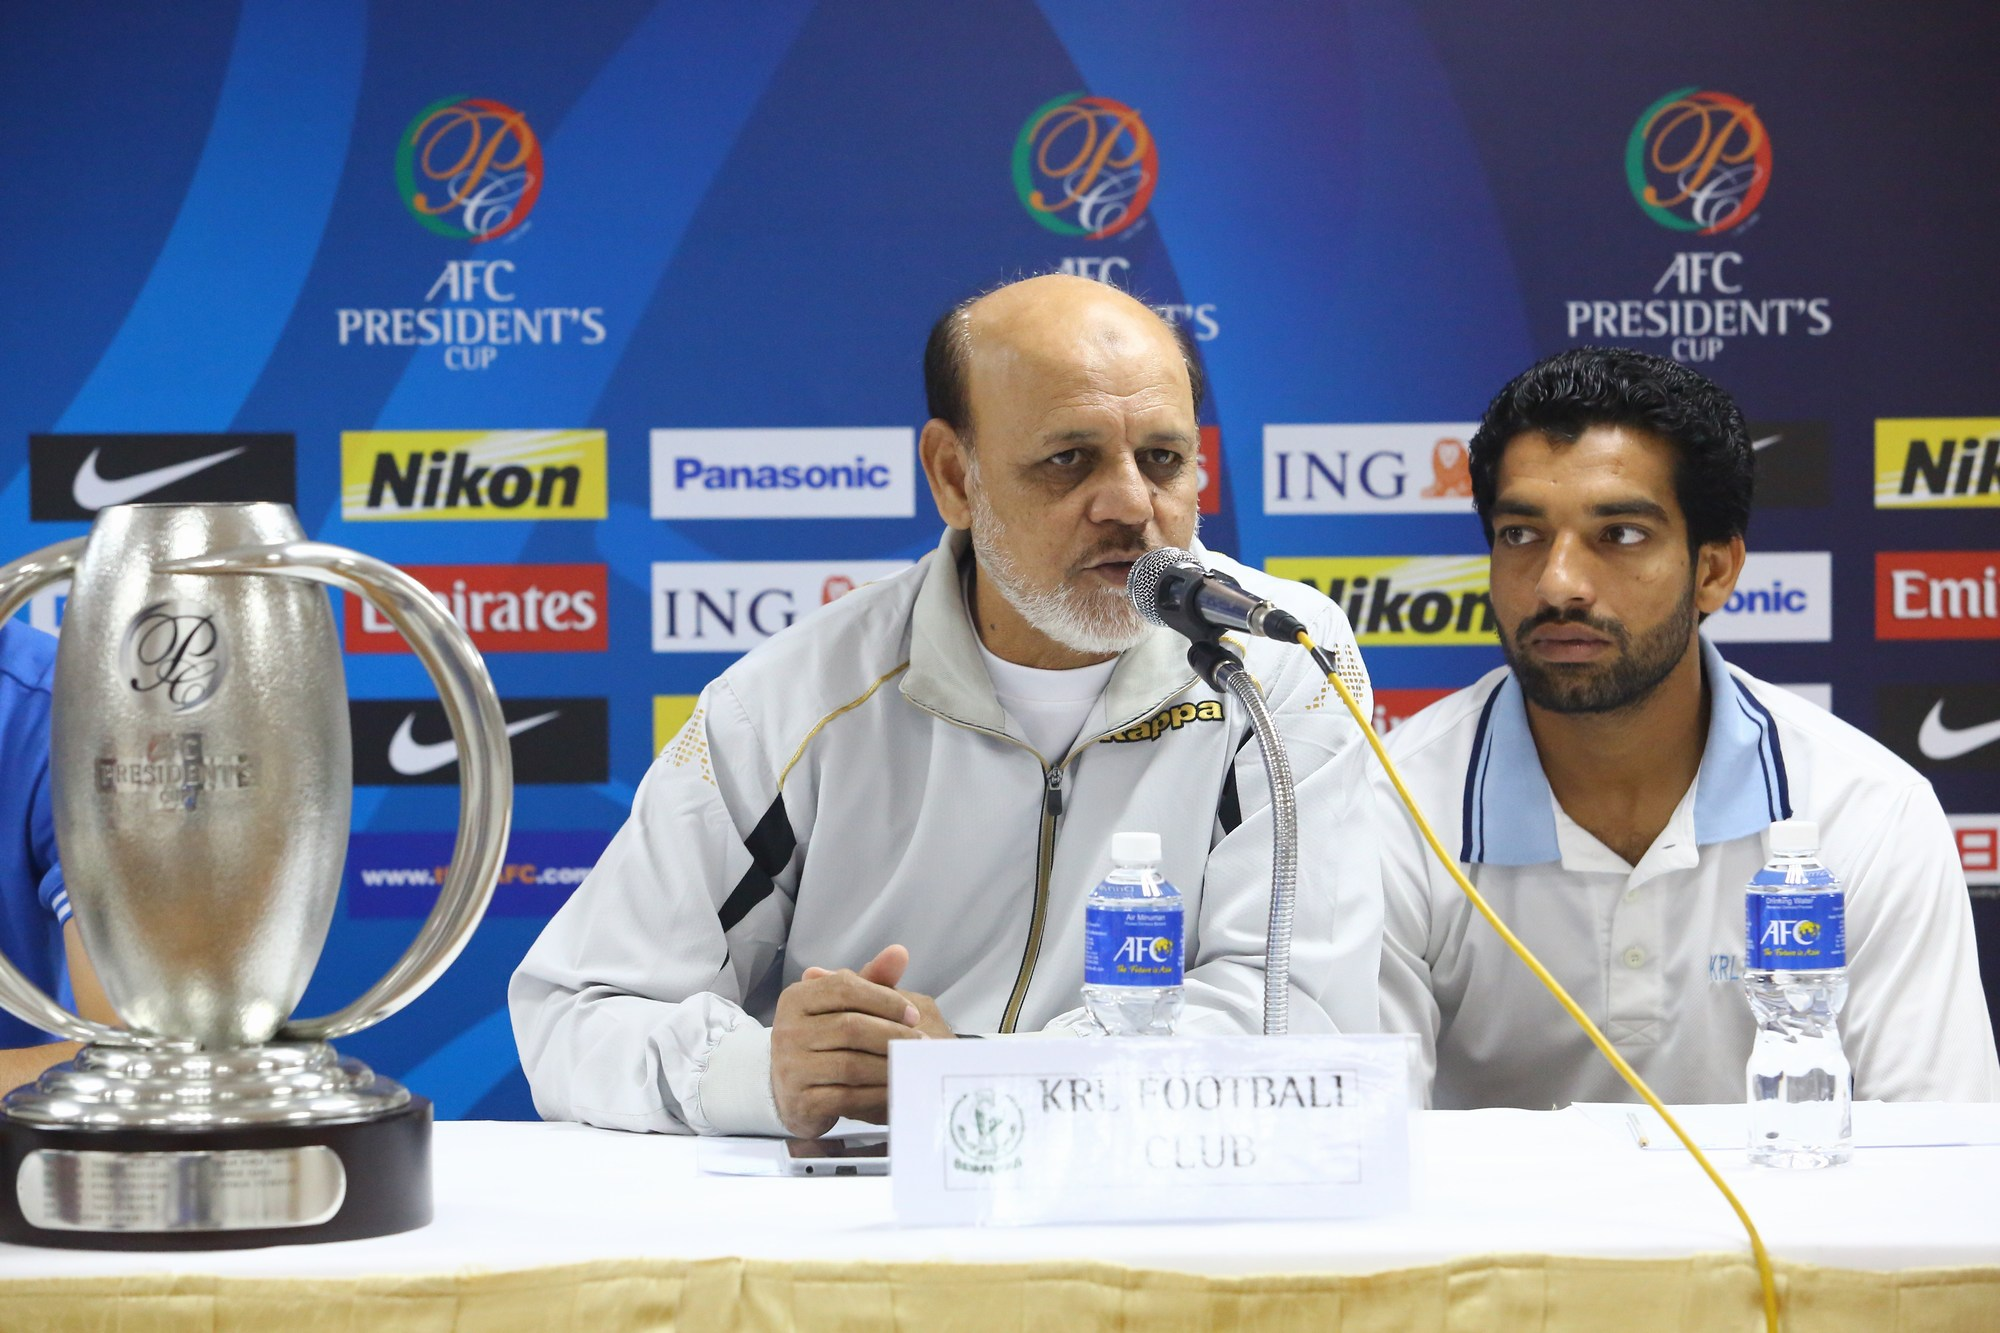 KRL one win away from AFC President's Cup glory [DAWN]